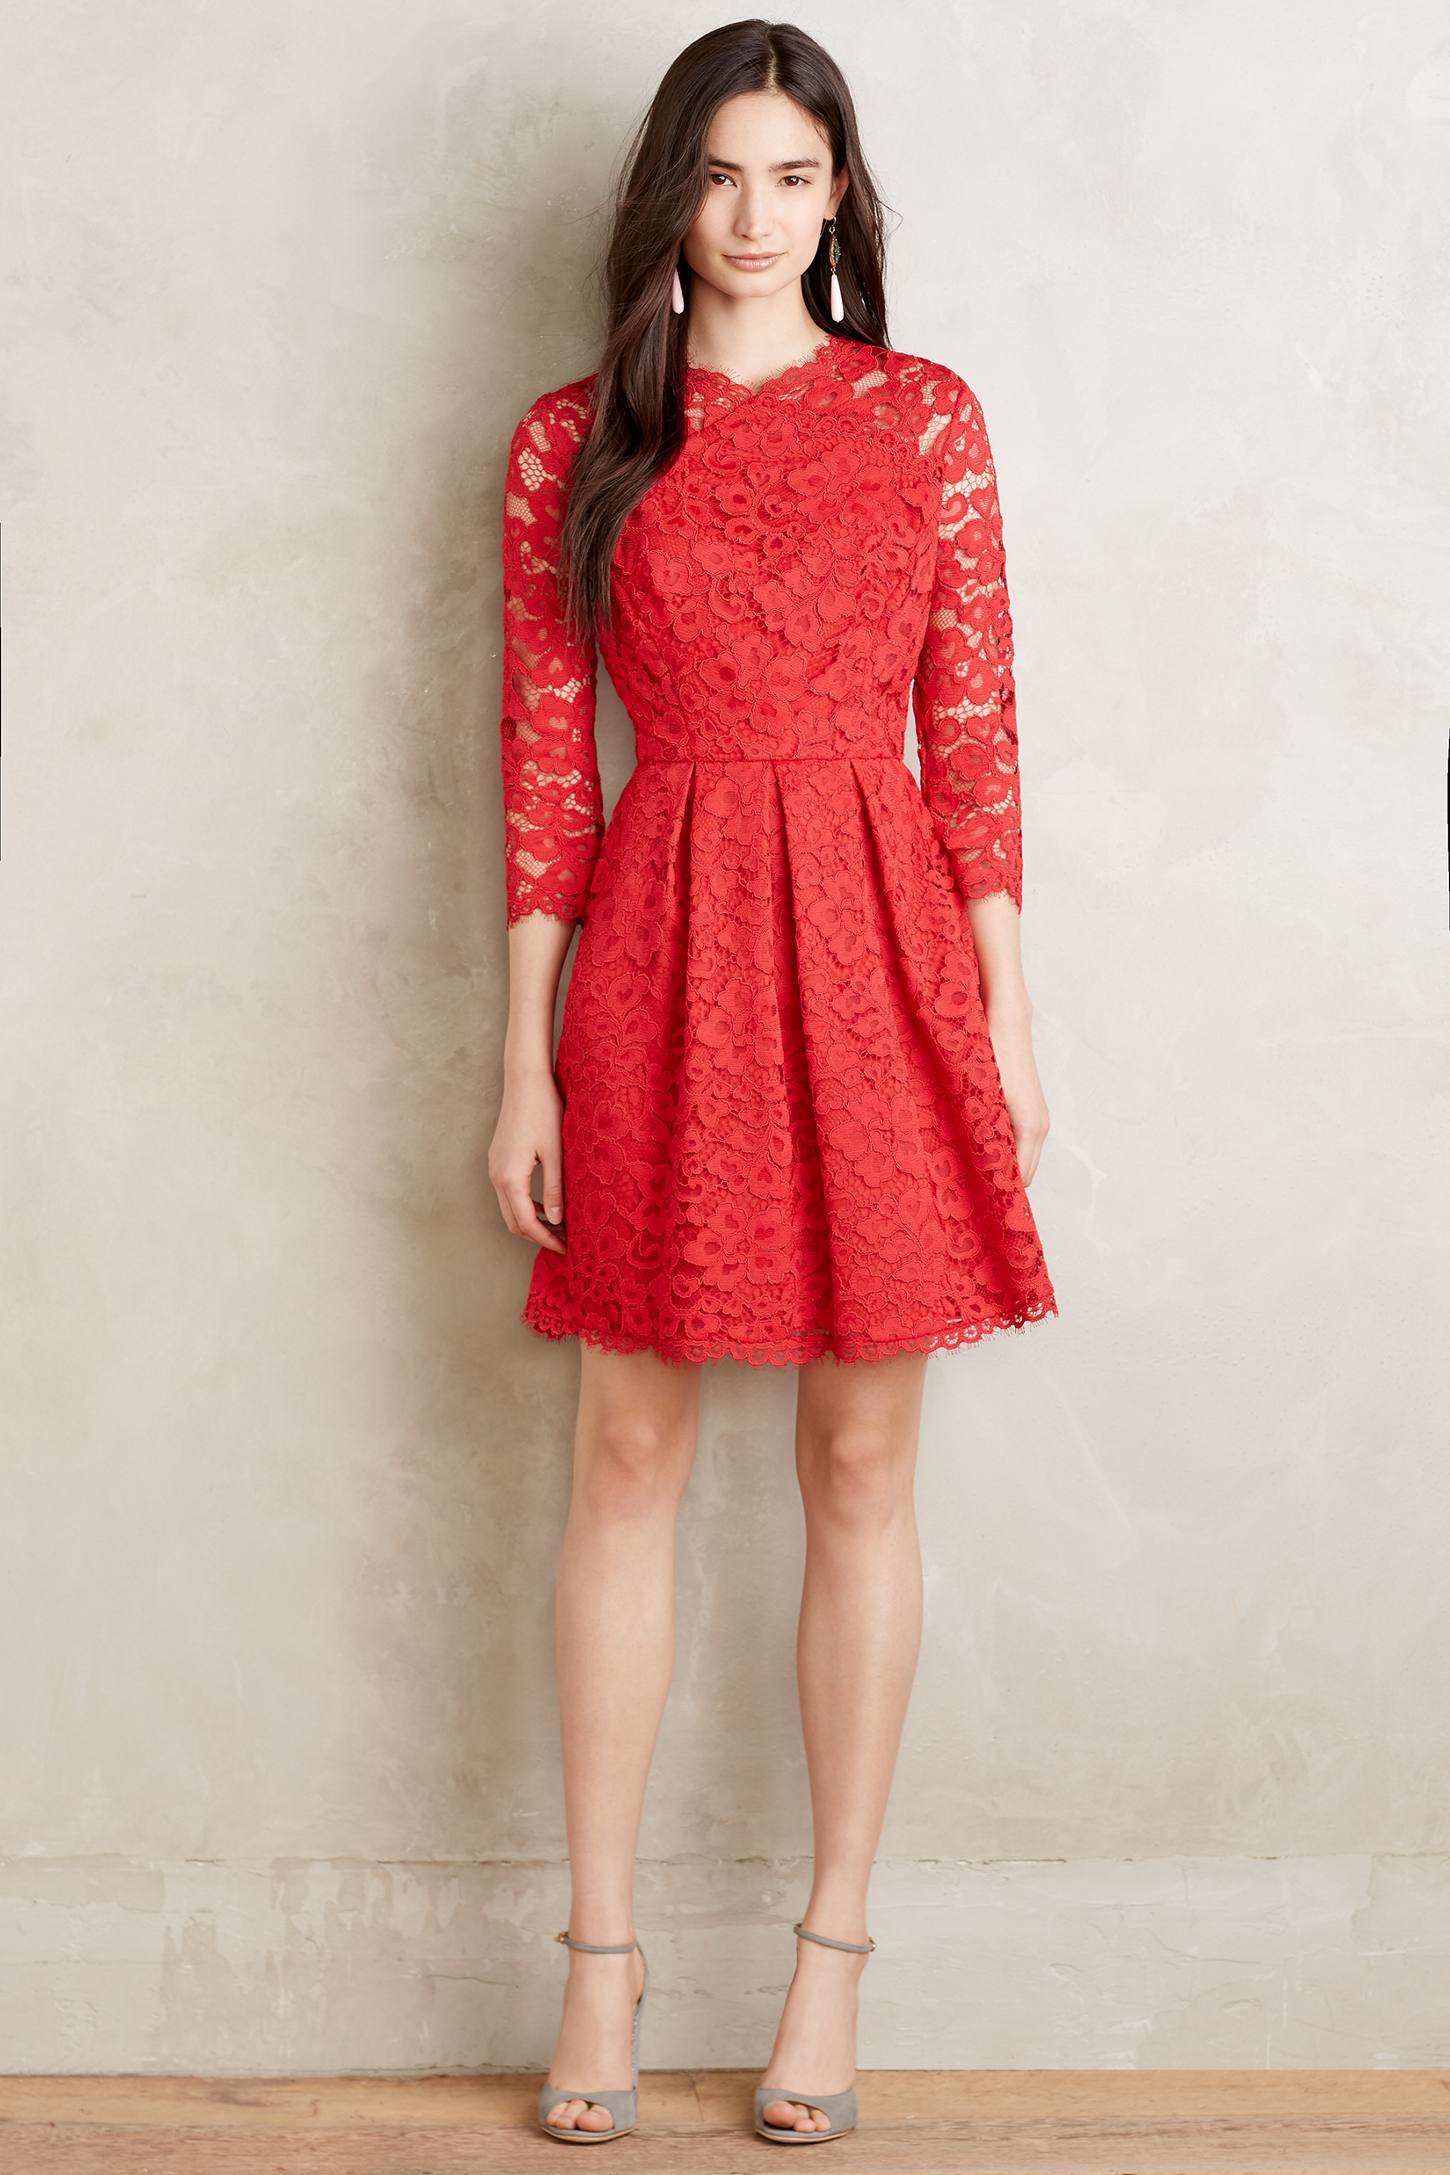 Shoshanna Vermillion Lace Dress in Red  Lyst